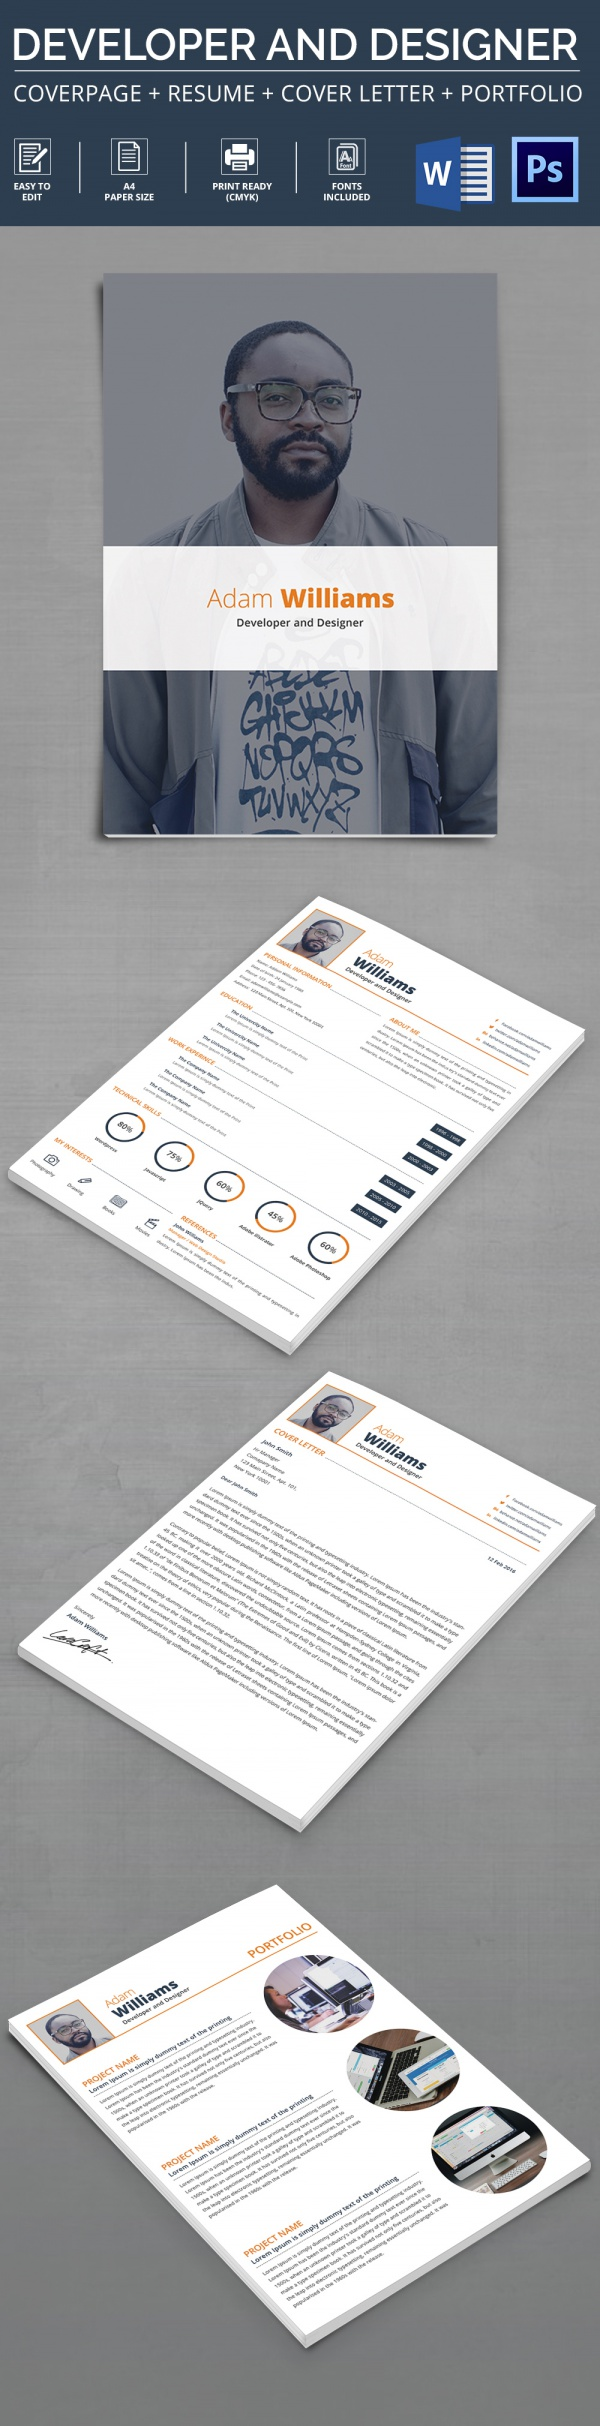 Developer And Designer Resume Template  Sample Professional Resume Templates